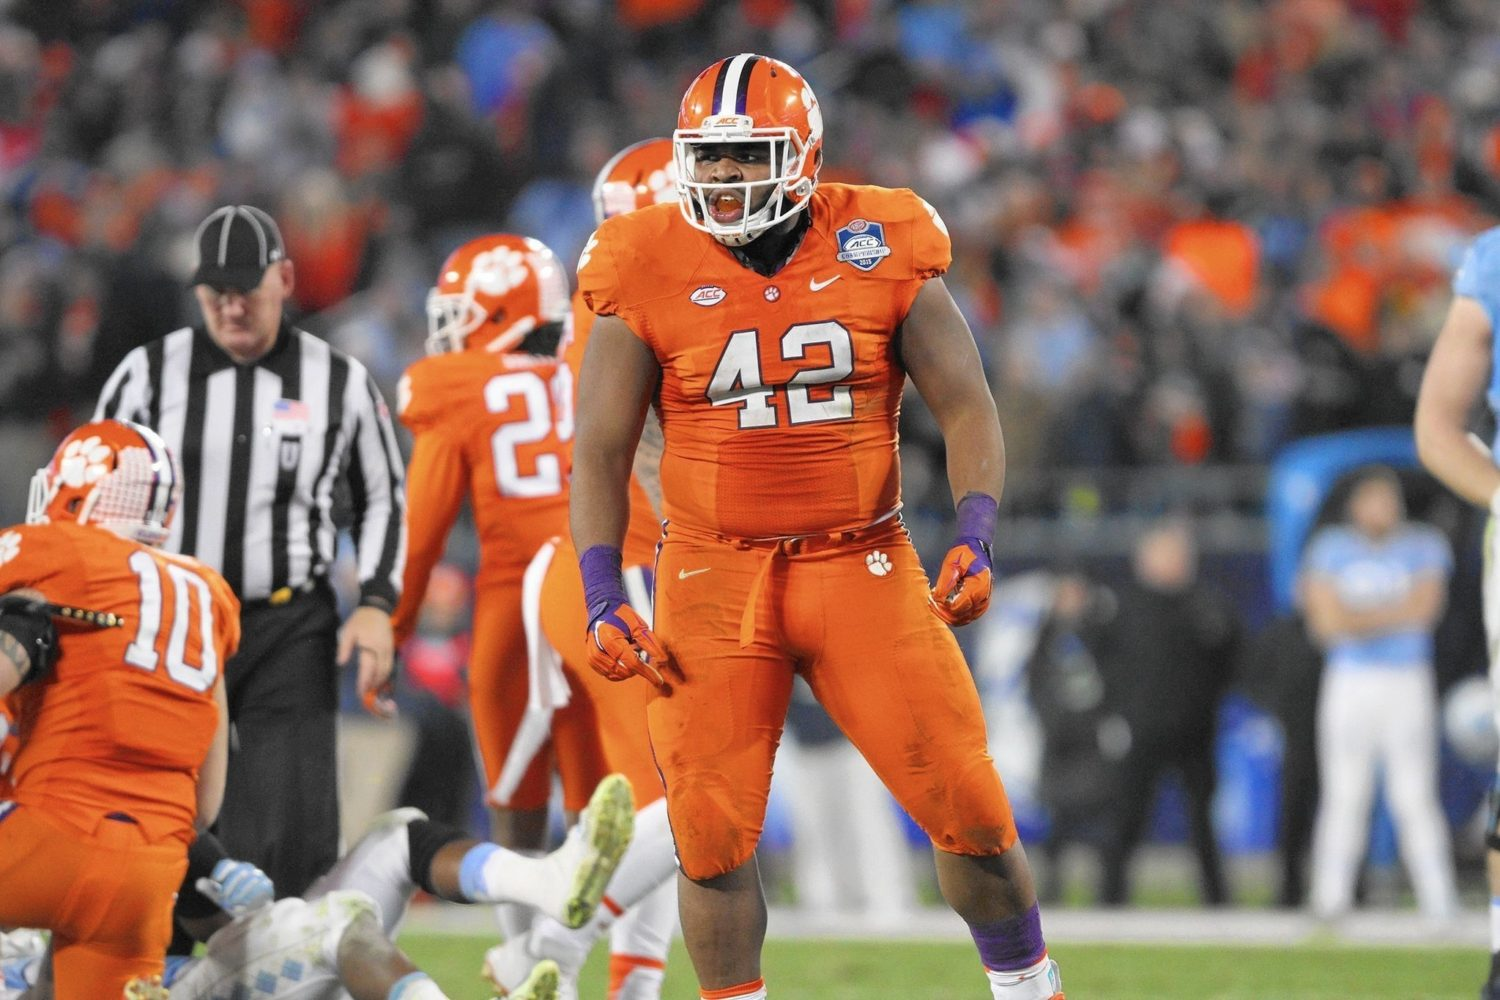 2019 NFL Mock Draft - Christian Wilkins